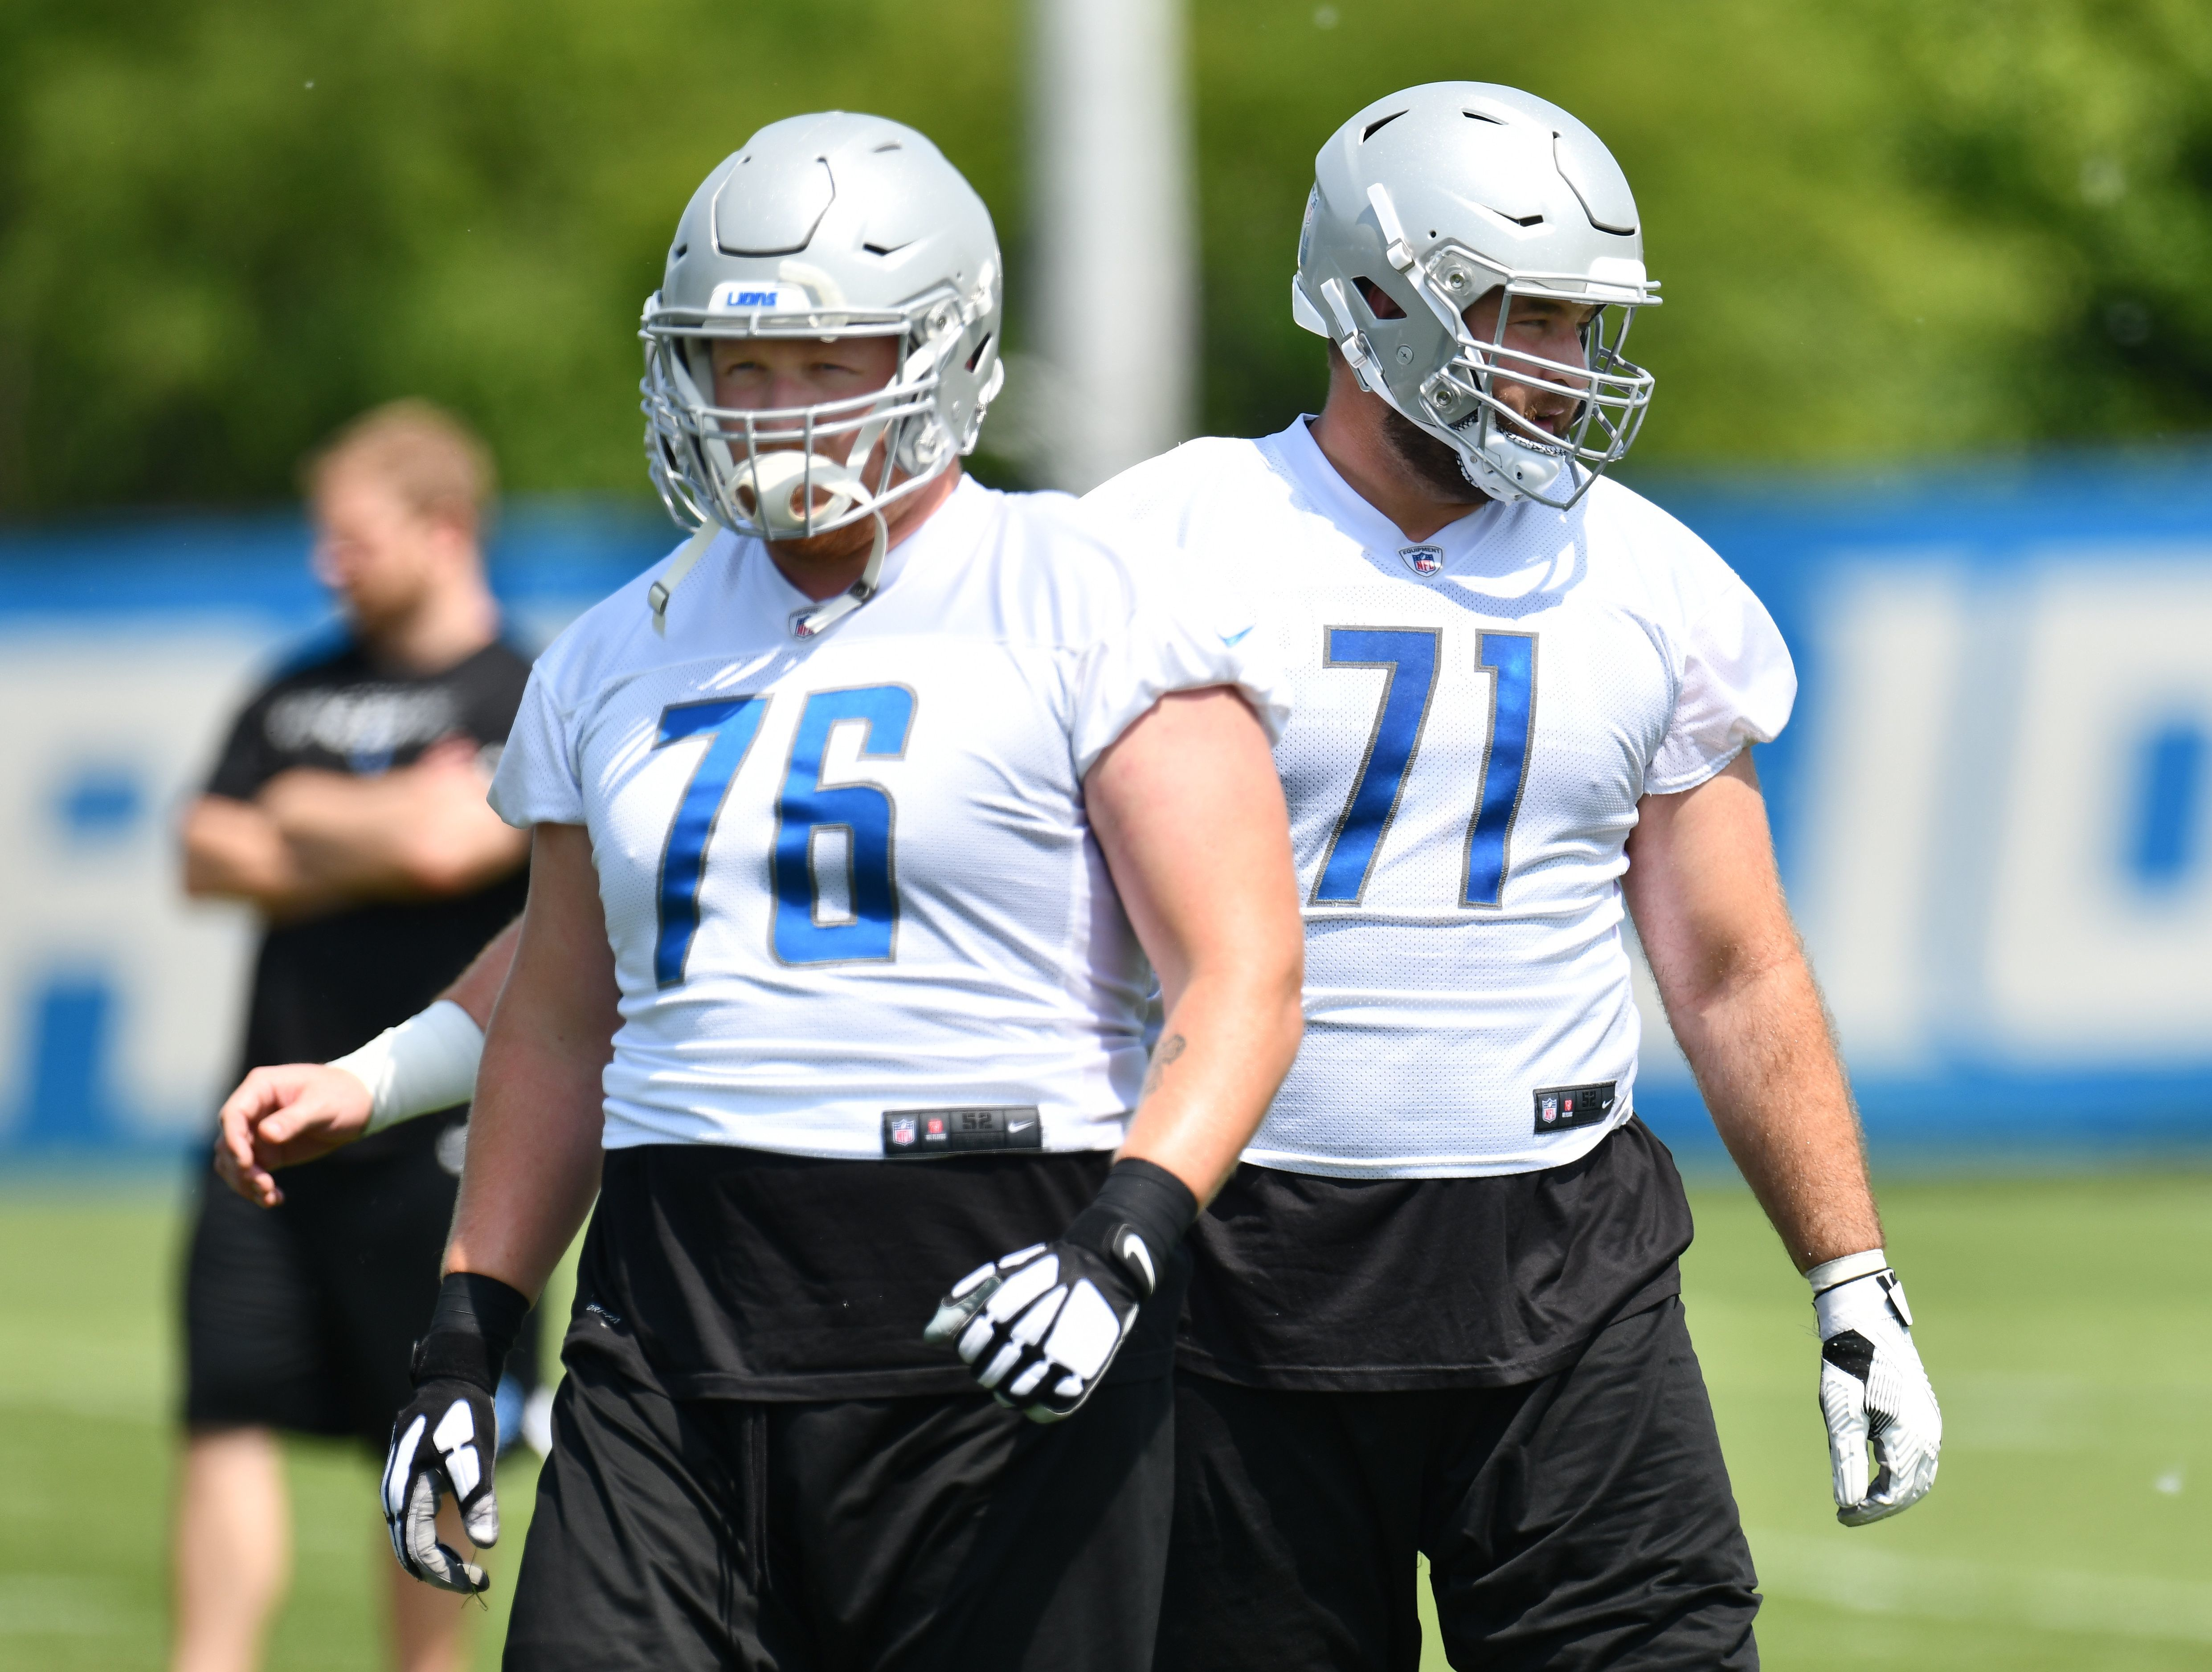 Lions guard T.J. Lang returns to practice